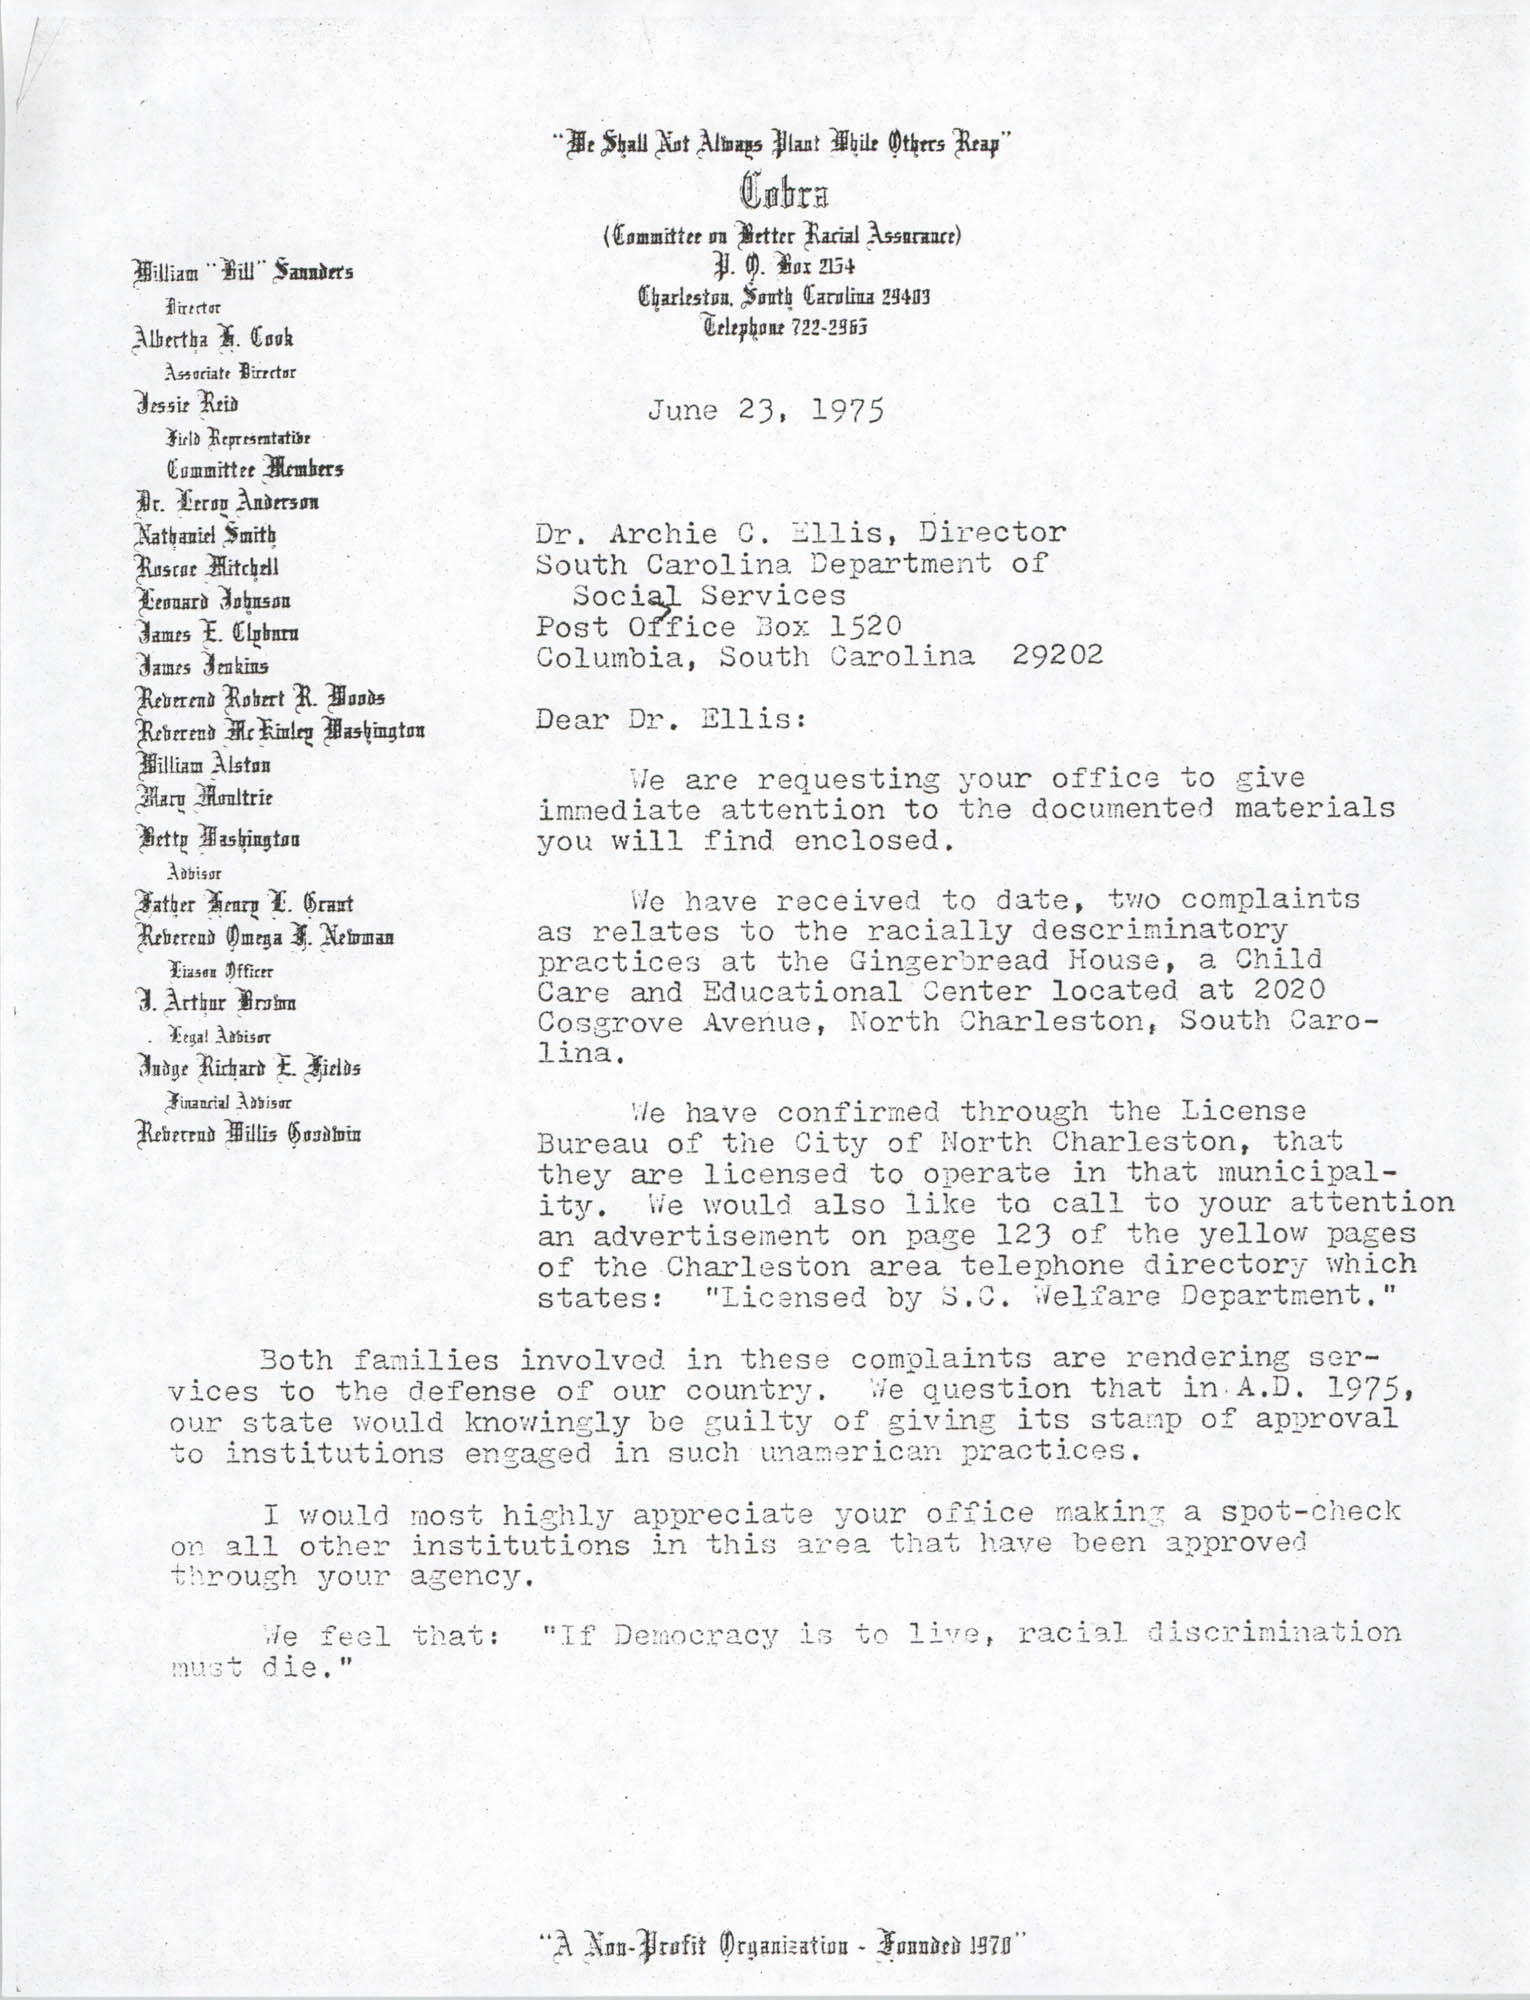 Letter from J. Arthur Brown to Archie C. Ellis, June 23, 1975